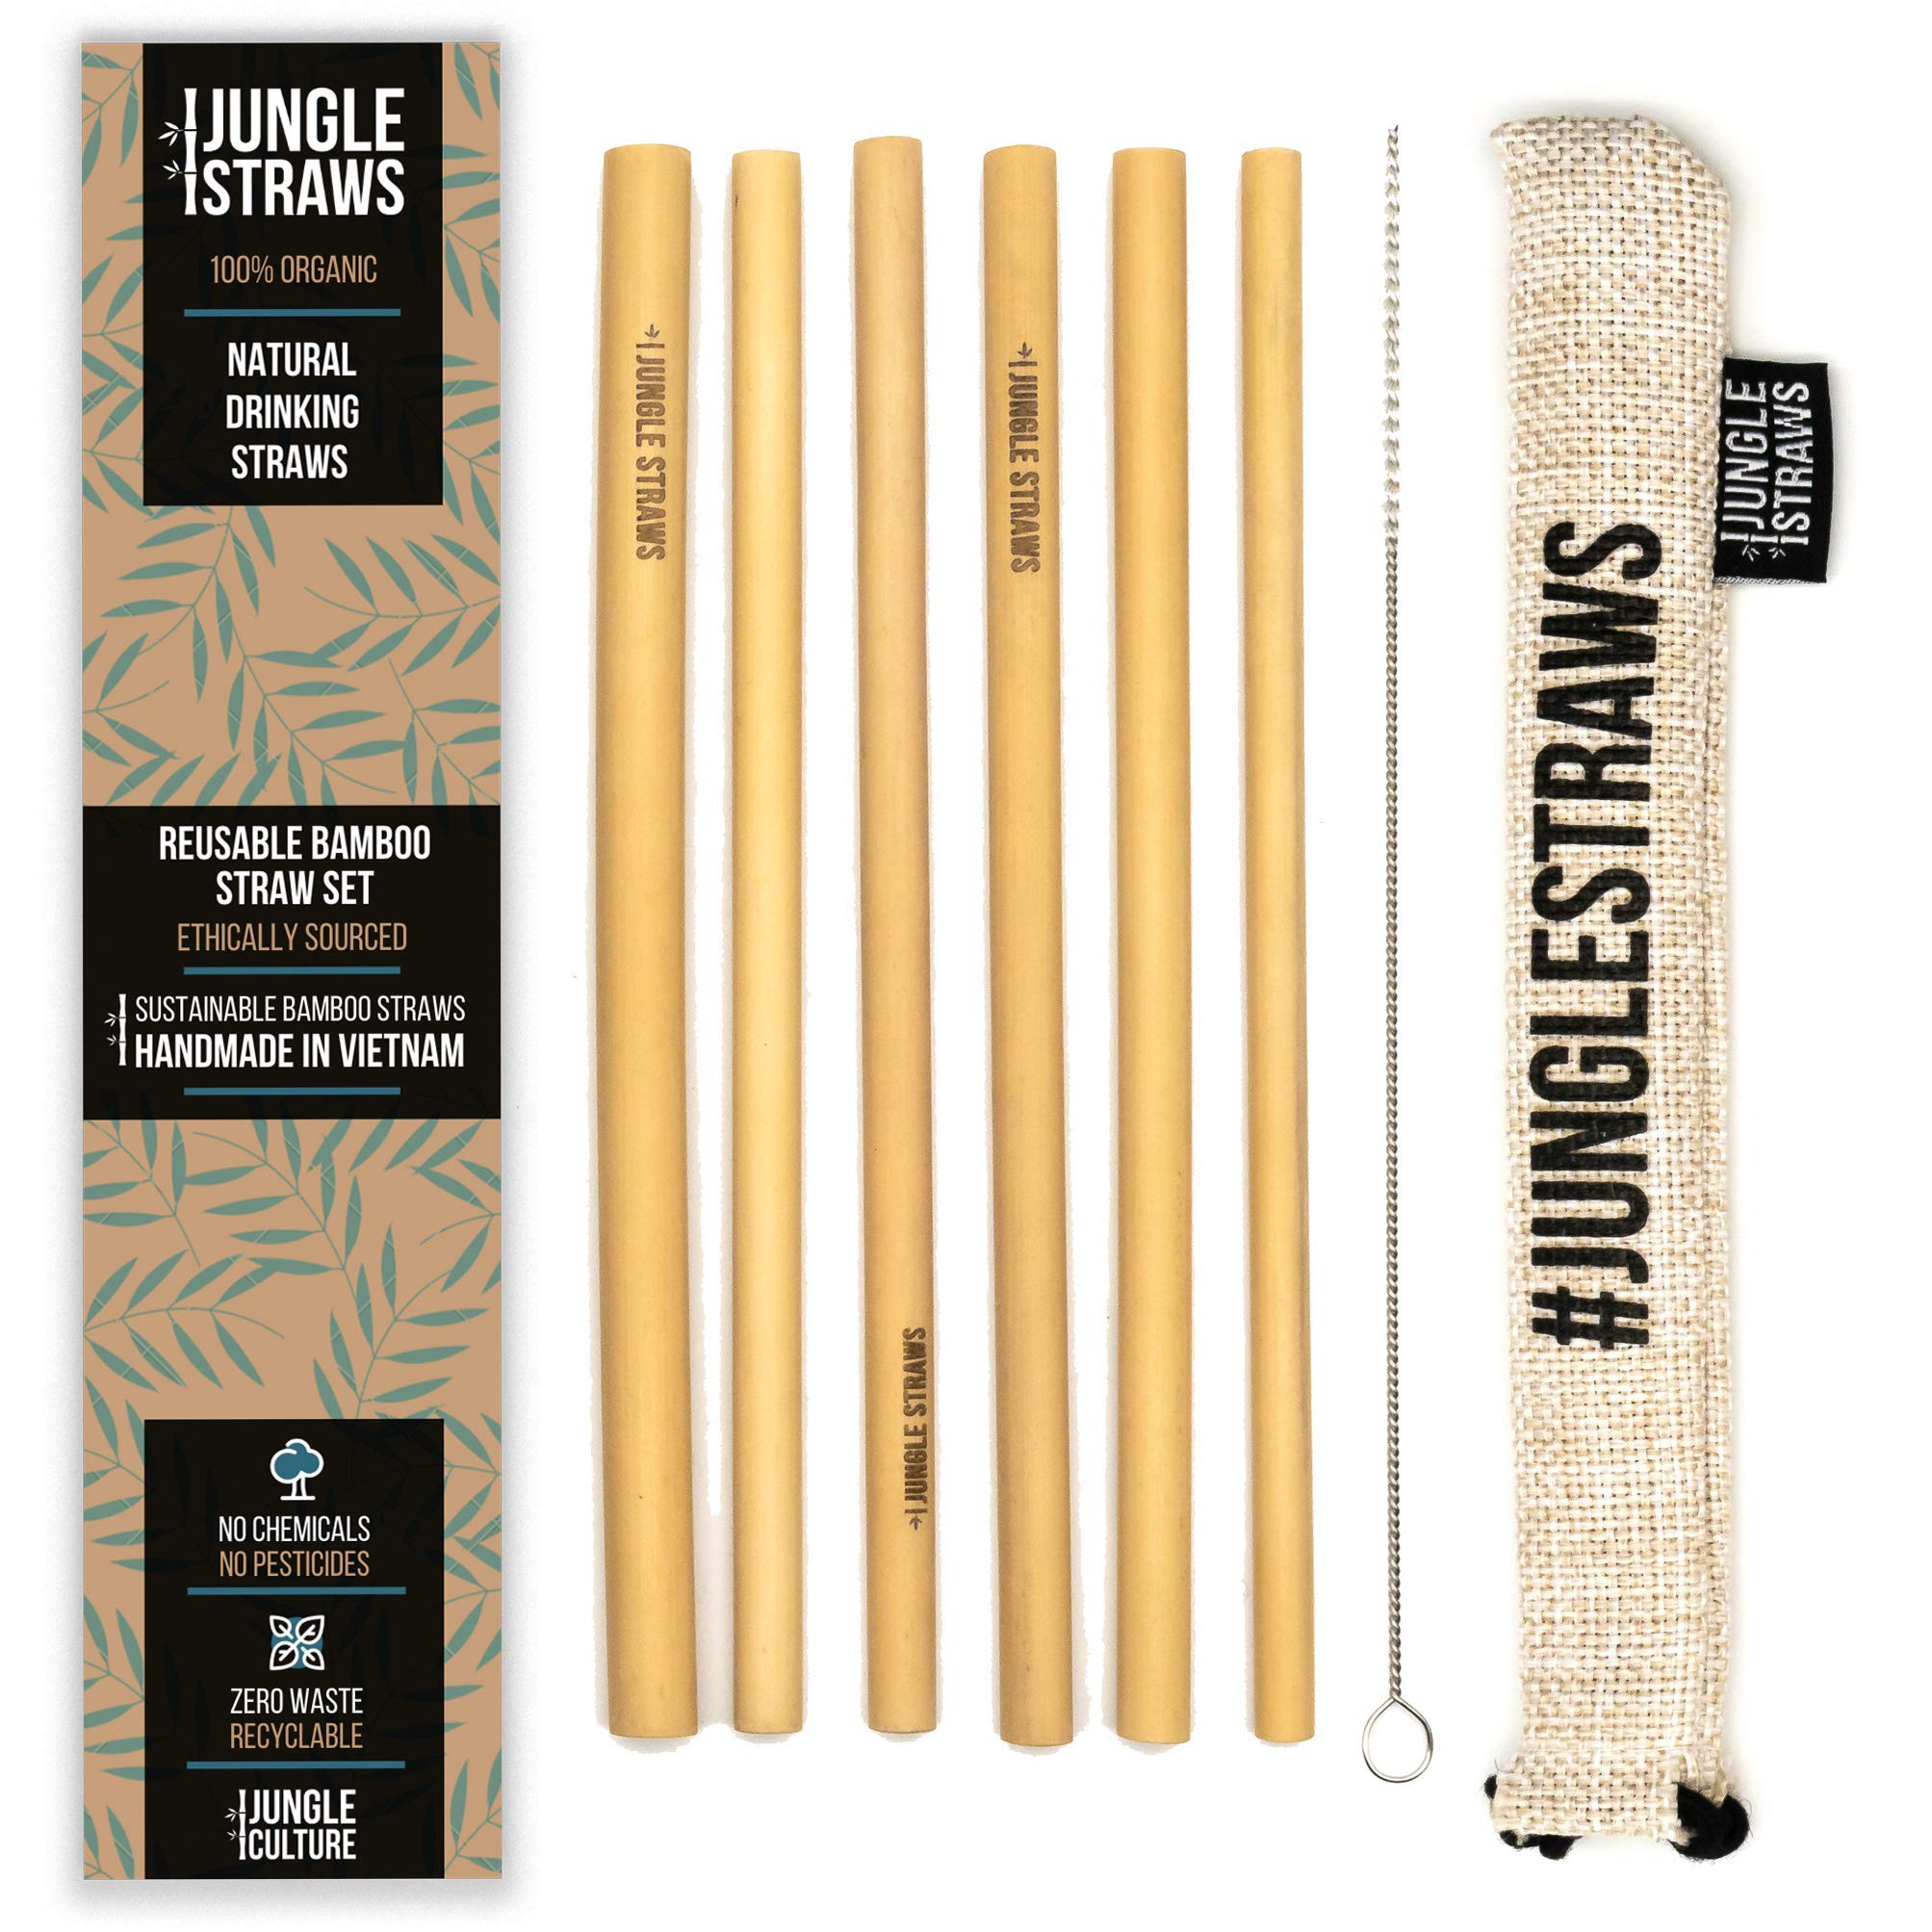 6 Bamboo Drinking Straws & Vanilla Coloured Carry Bag